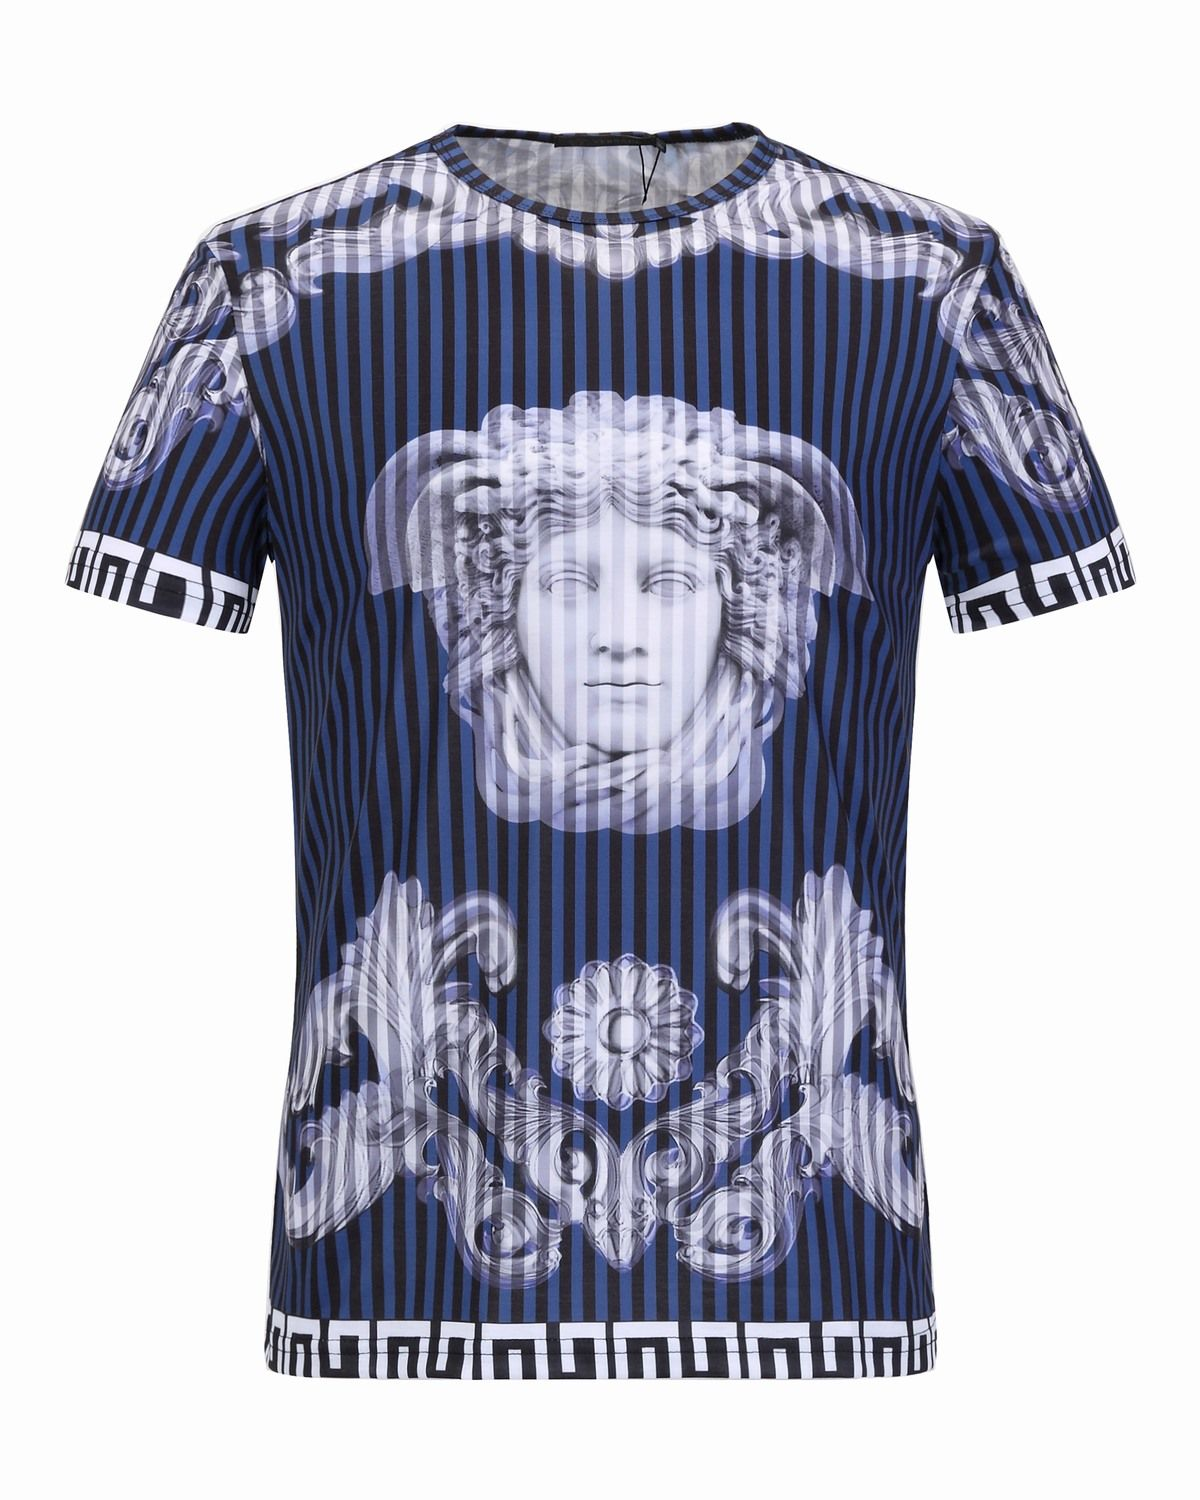 79c7b2975 Replica Wholesale Versace T-Shirts for men #263612,$21 USD On sale --  [GT263612] from China